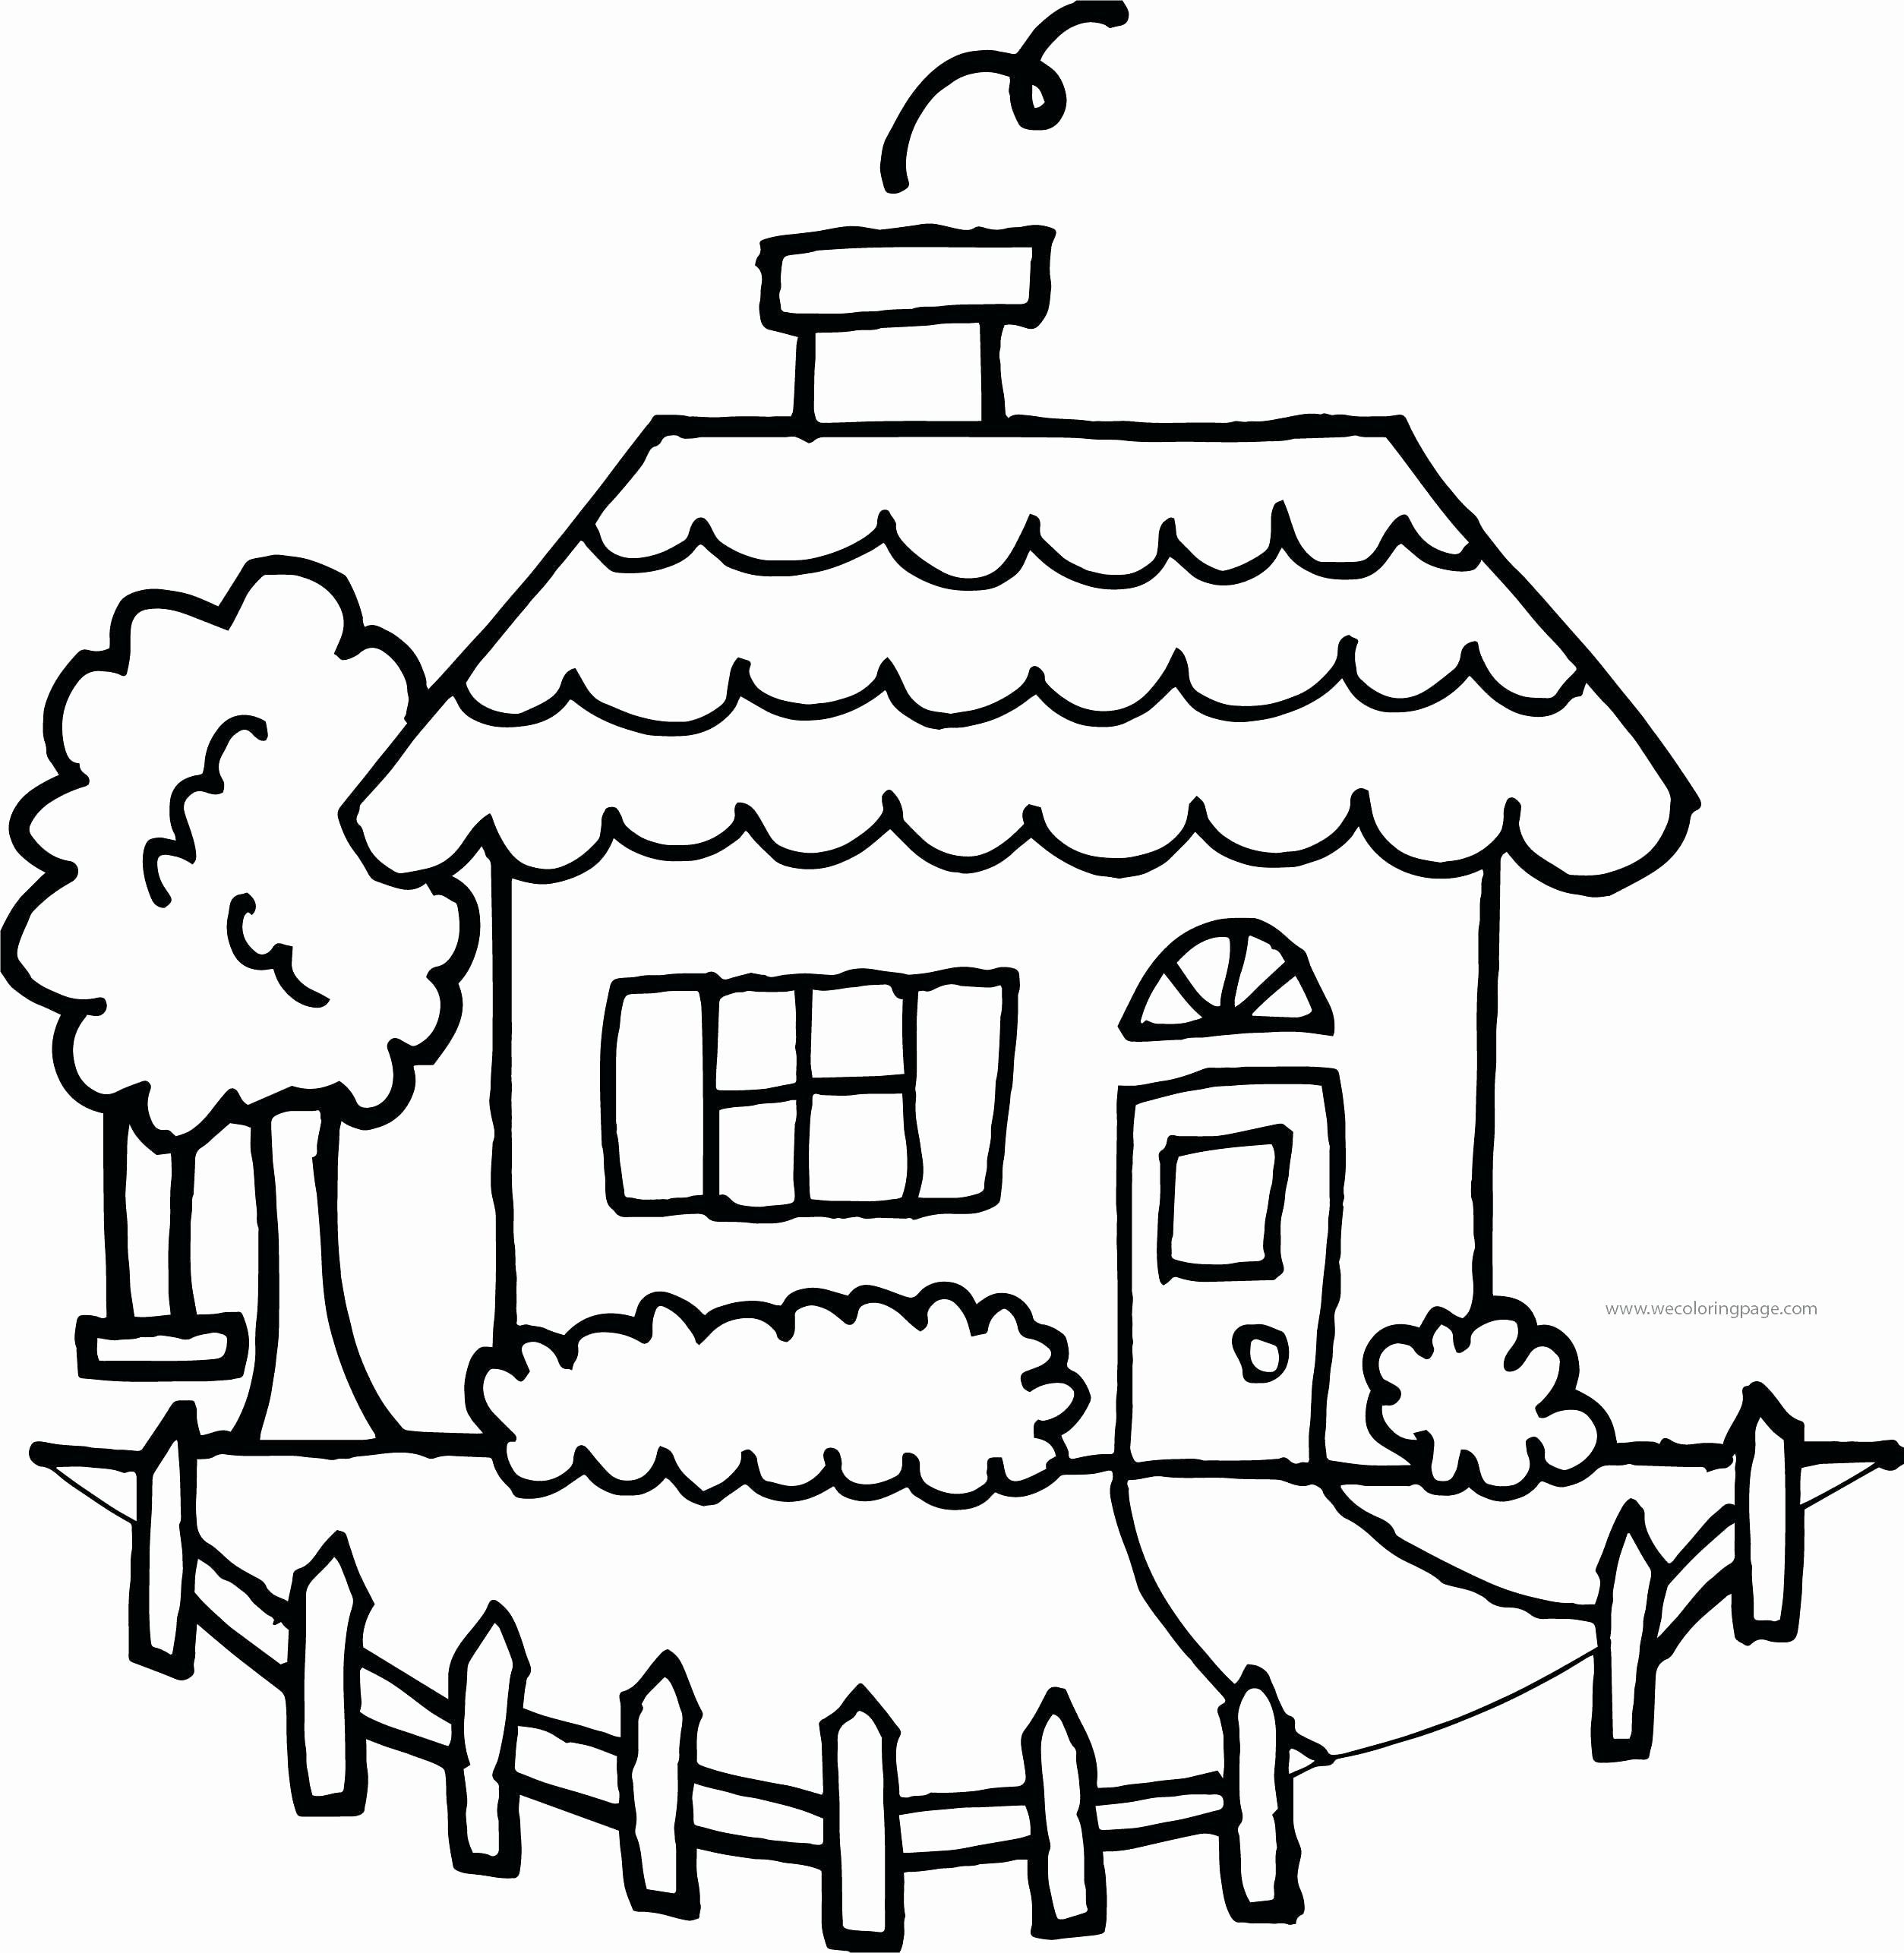 Coloring Tree House New House Coloring Page Album Sabadaphnecottage House Colouring Pages Coloring Pages Coloring Pages For Kids